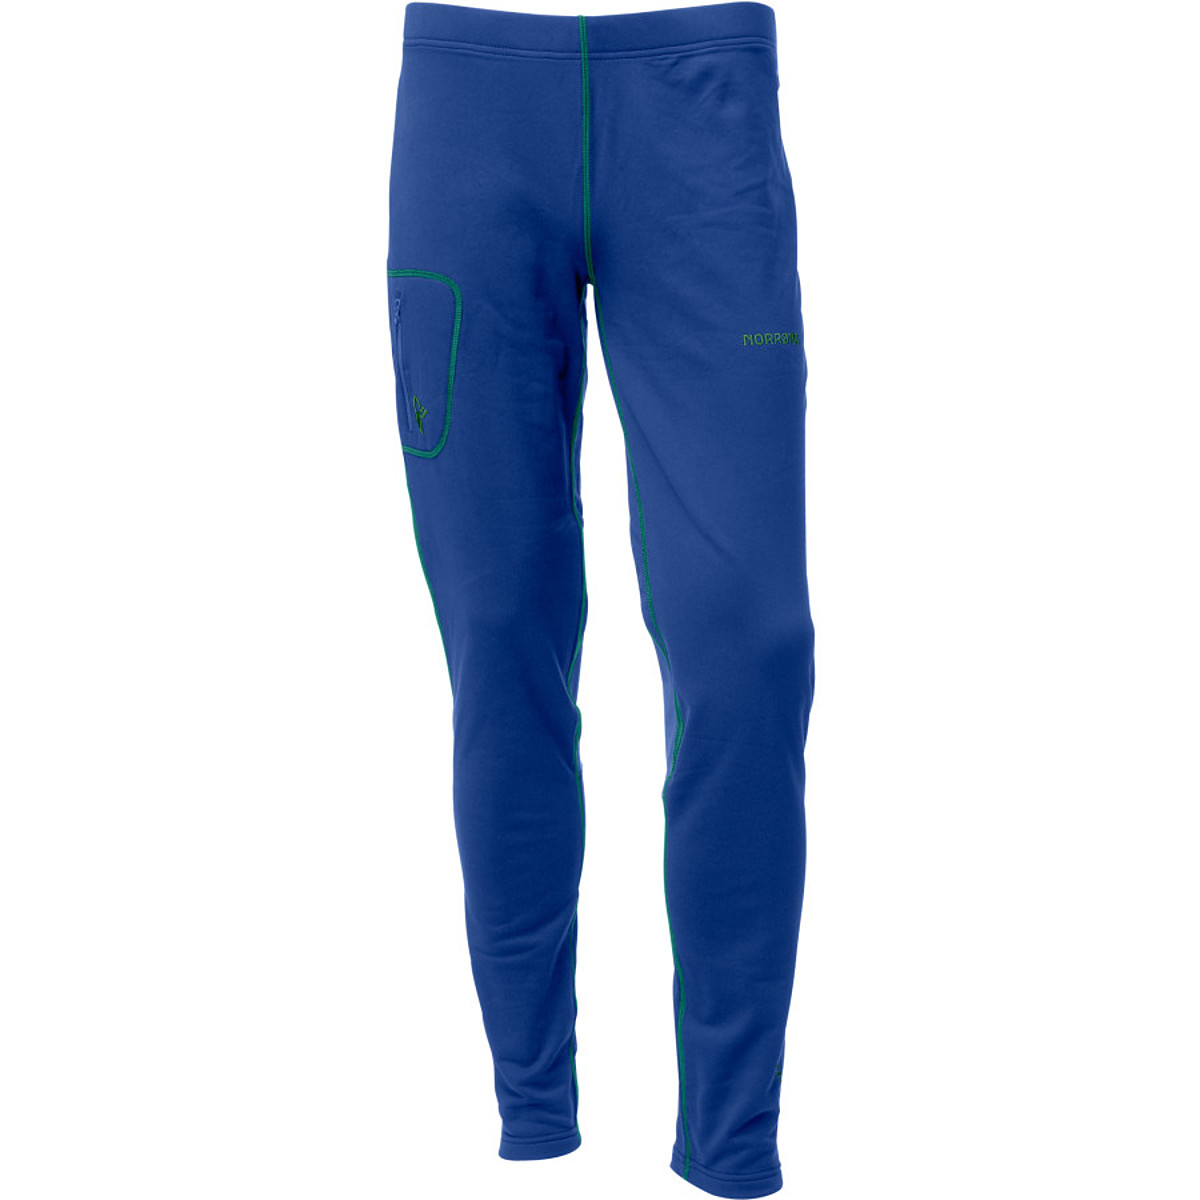 photo: Norrona Women's Trollveggen Warm2 Stretch Tight performance pant/tight